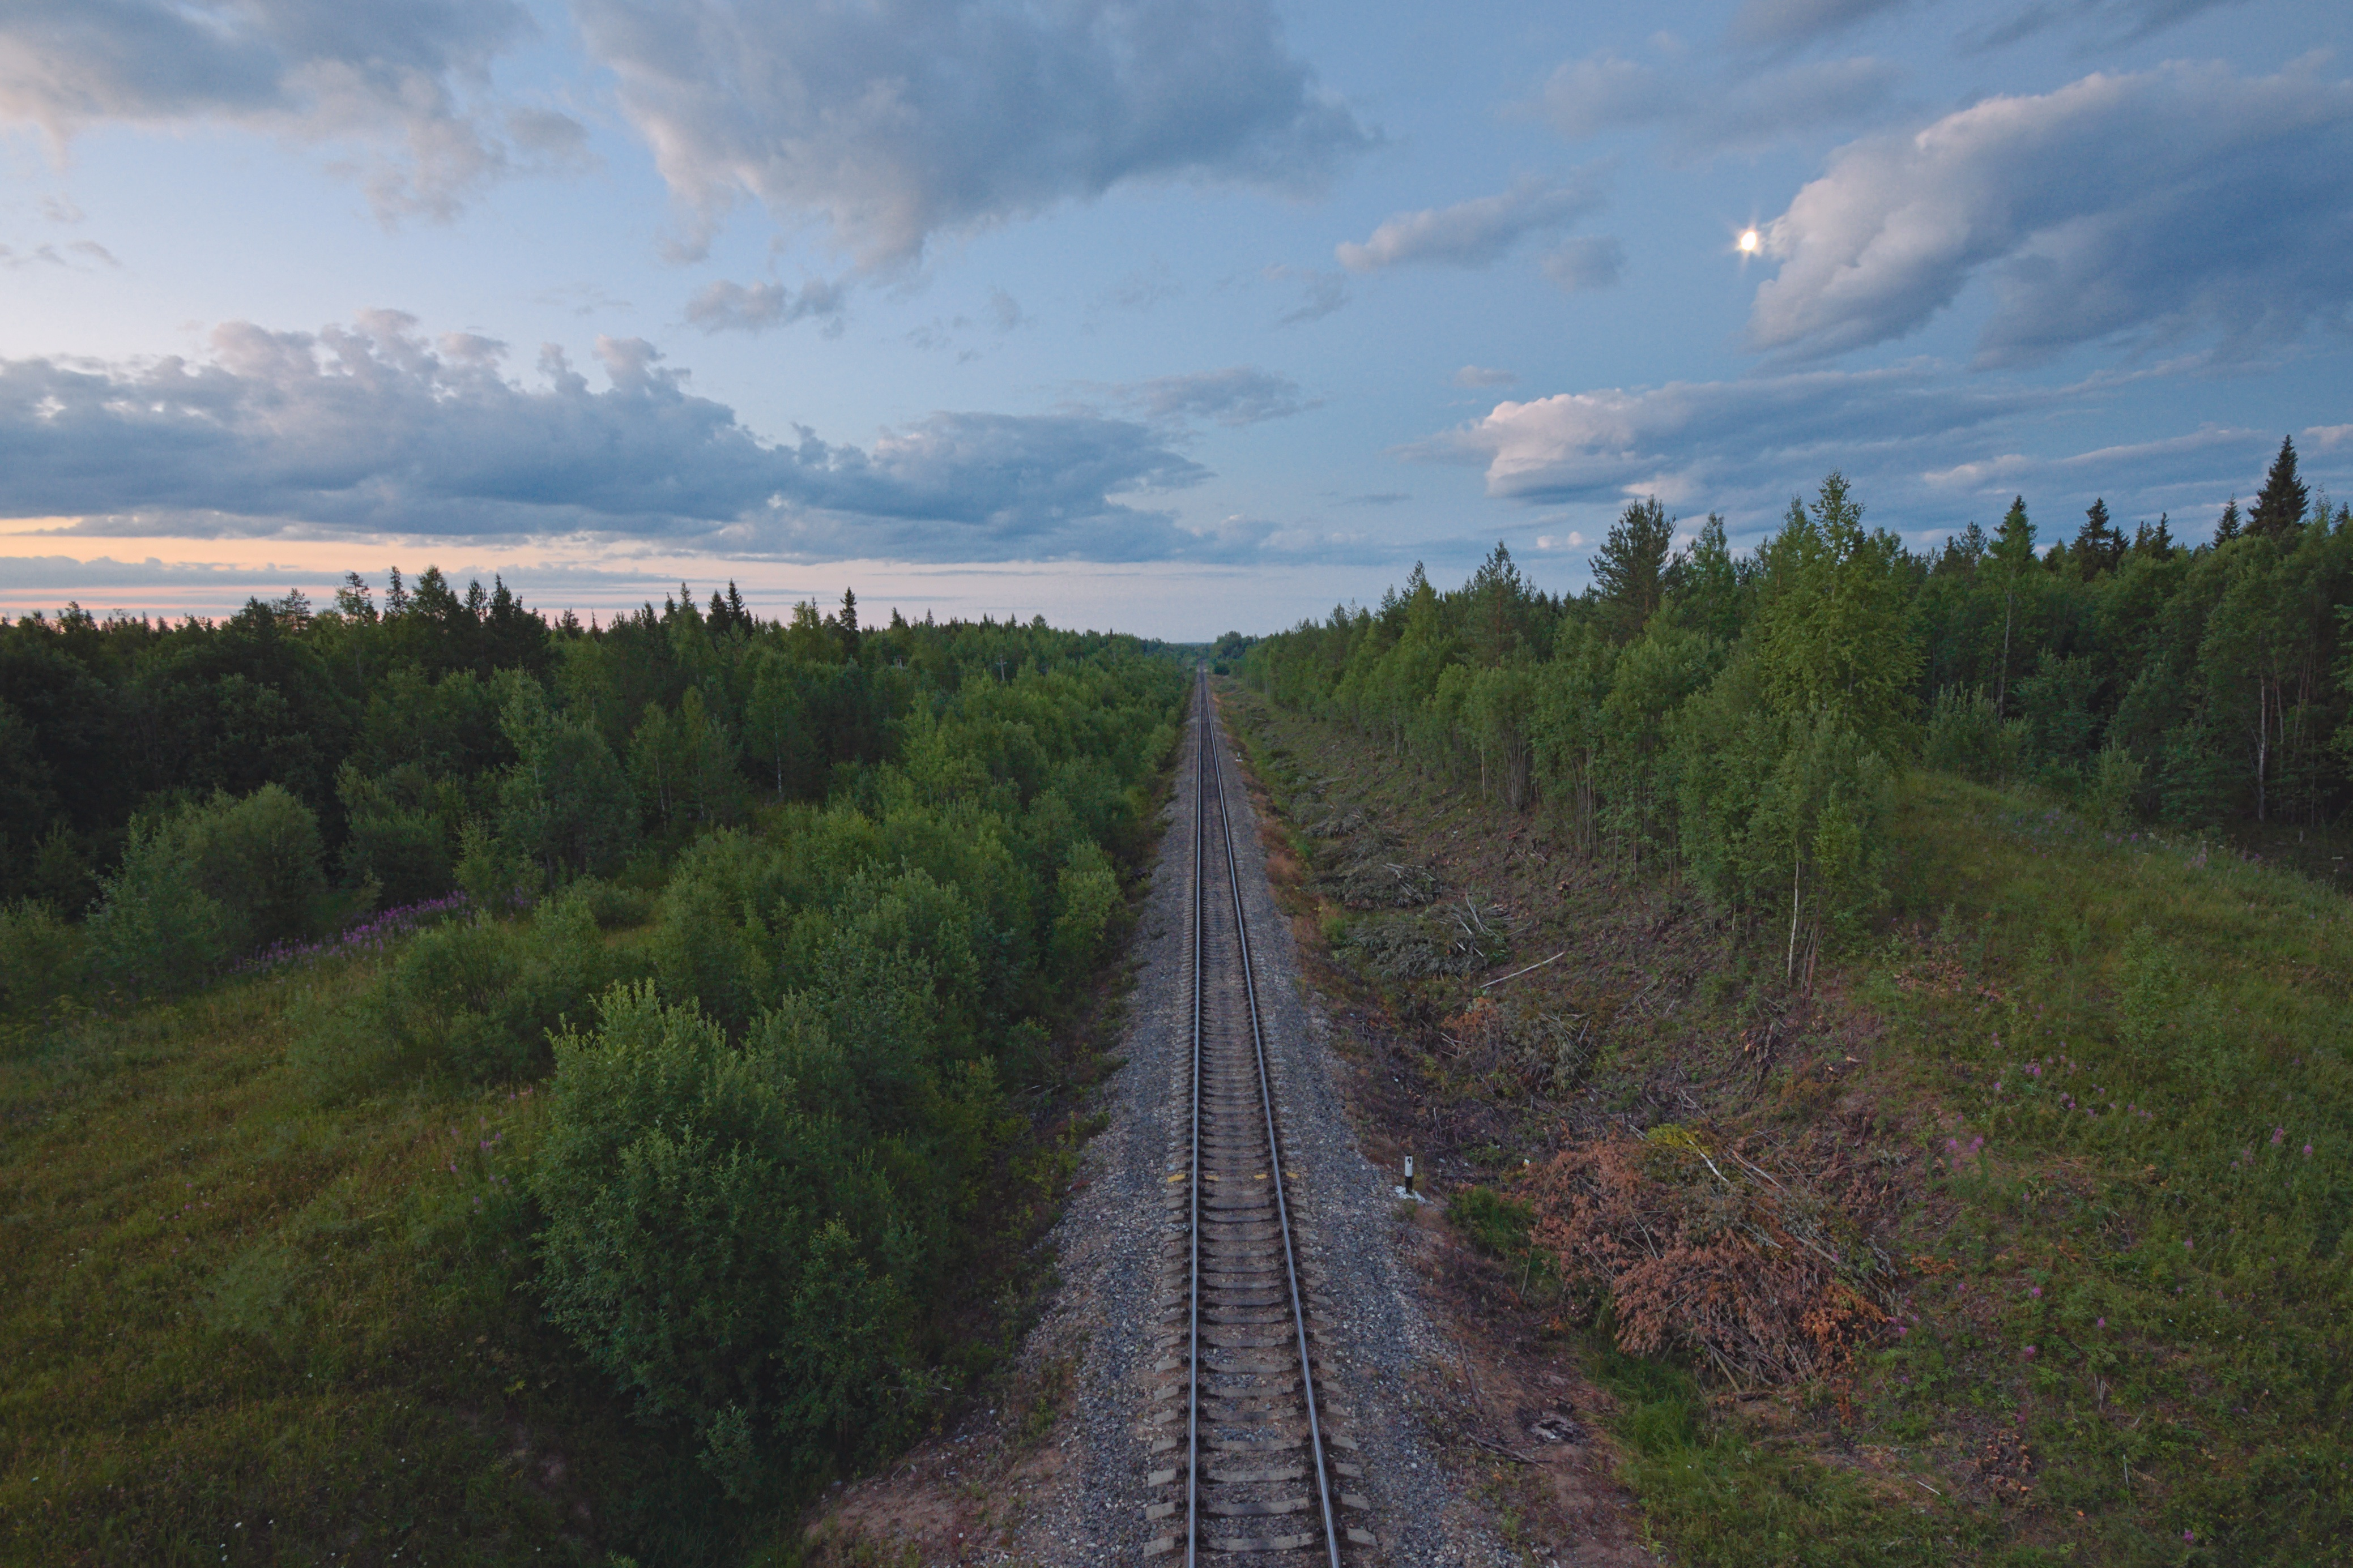 Nature, Track, Trees, Rail, Metal, HQ Photo